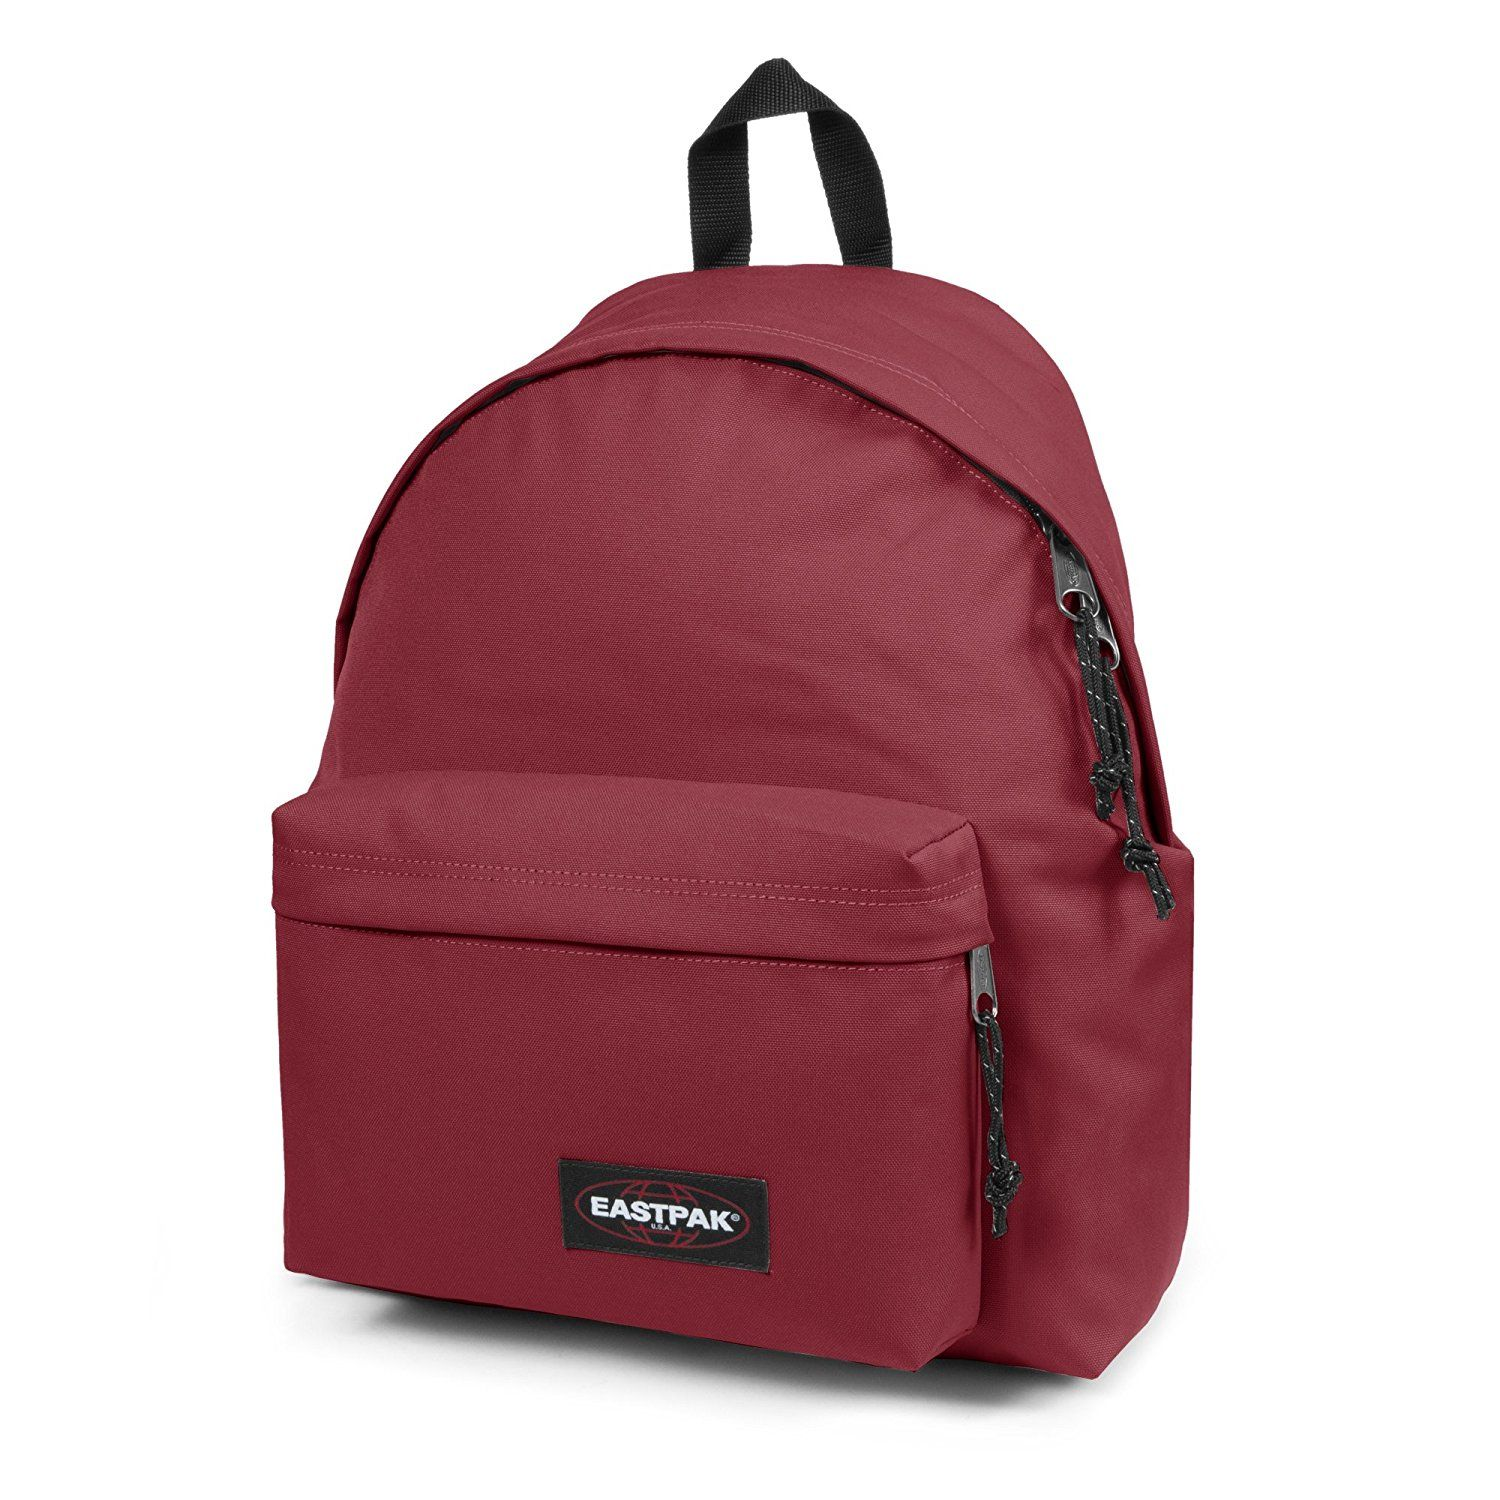 Eastpak Sac à dos loisir, rouge (Rouge) EK62007K: Amazon